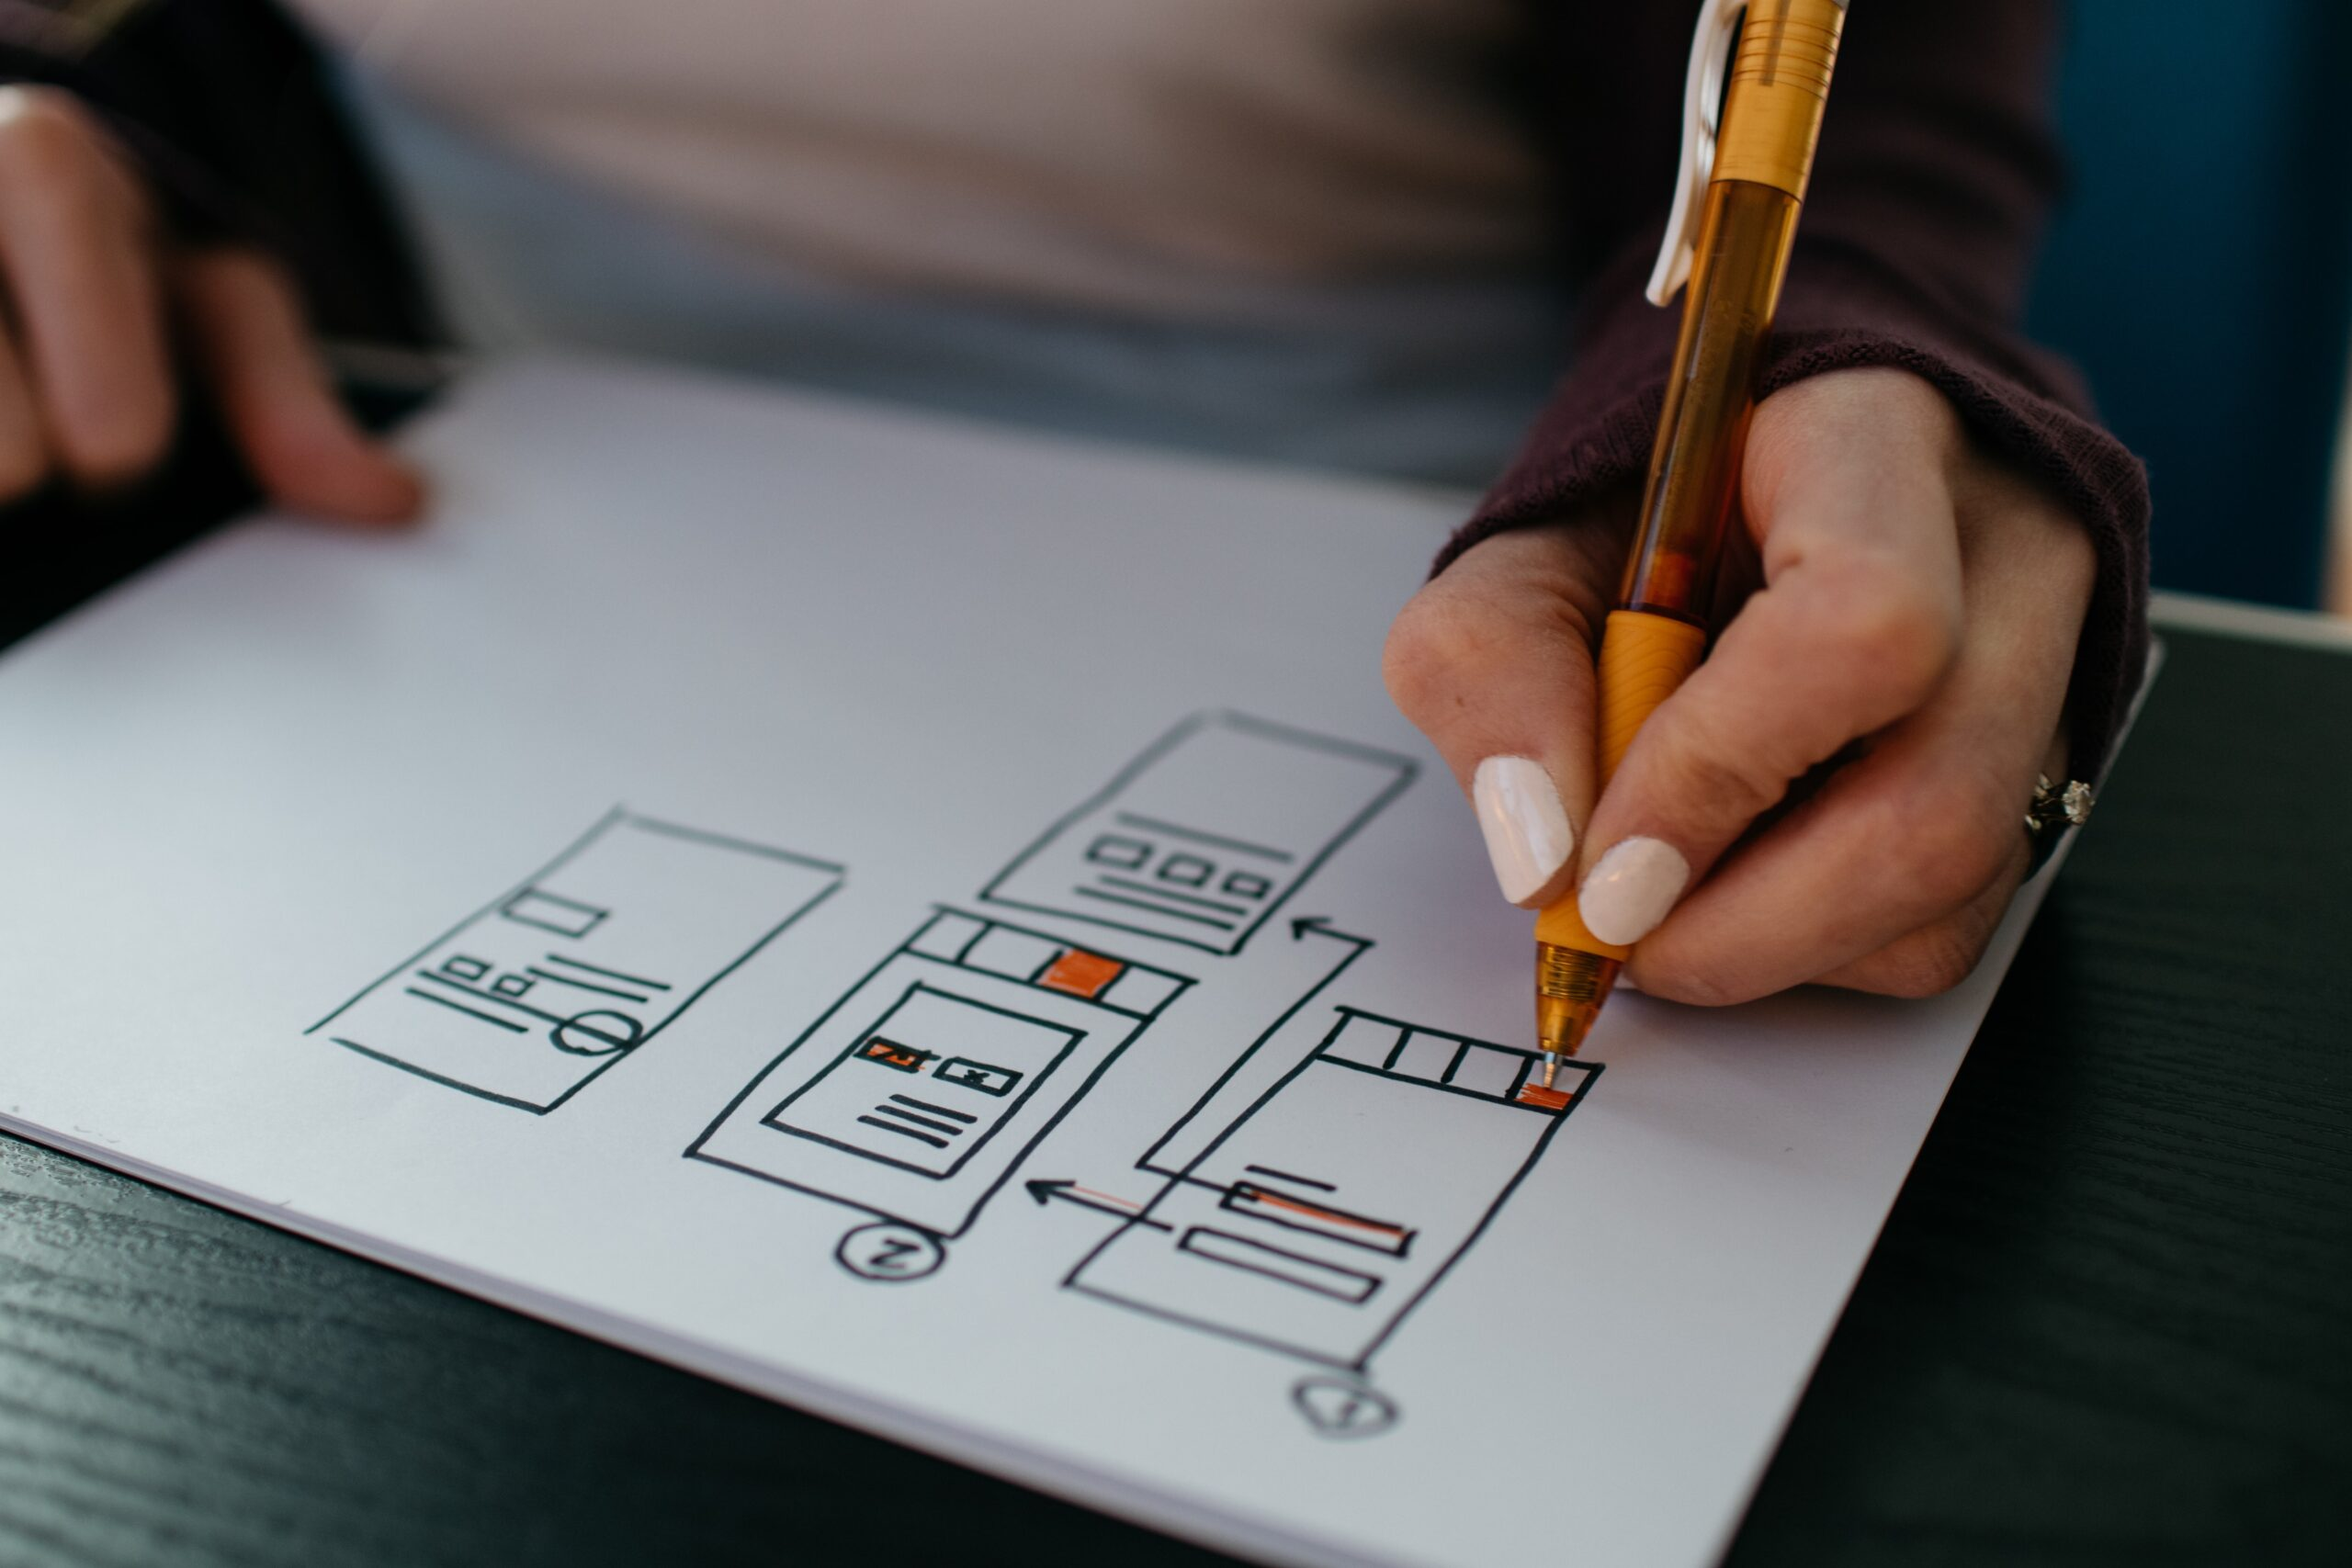 How can UX design help to improve the sales and conversions of business? - Grove86